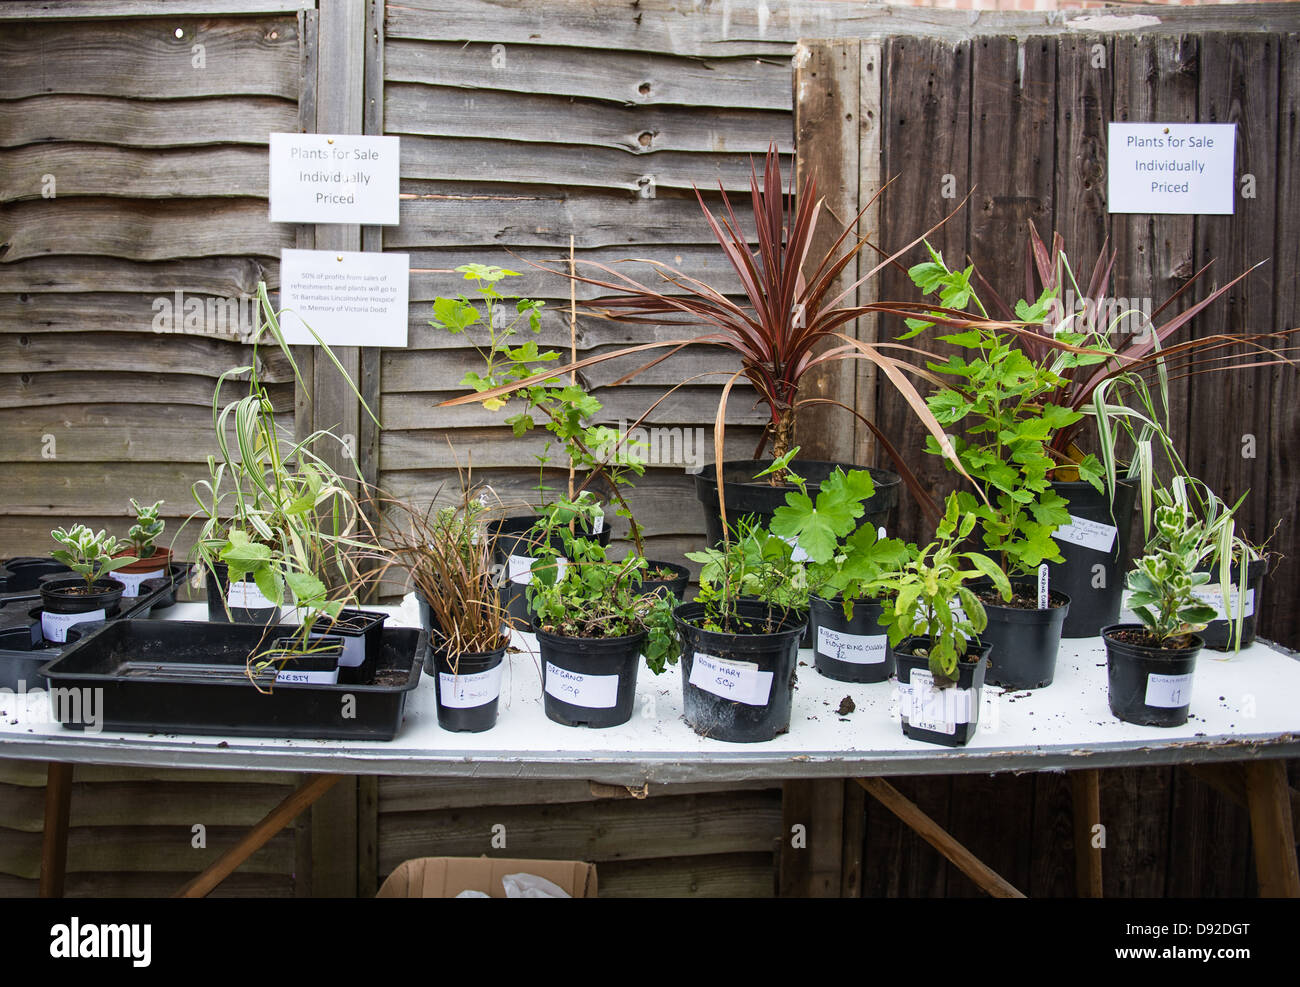 A shelf of plants for sale at an Open Garden event - Stock Image